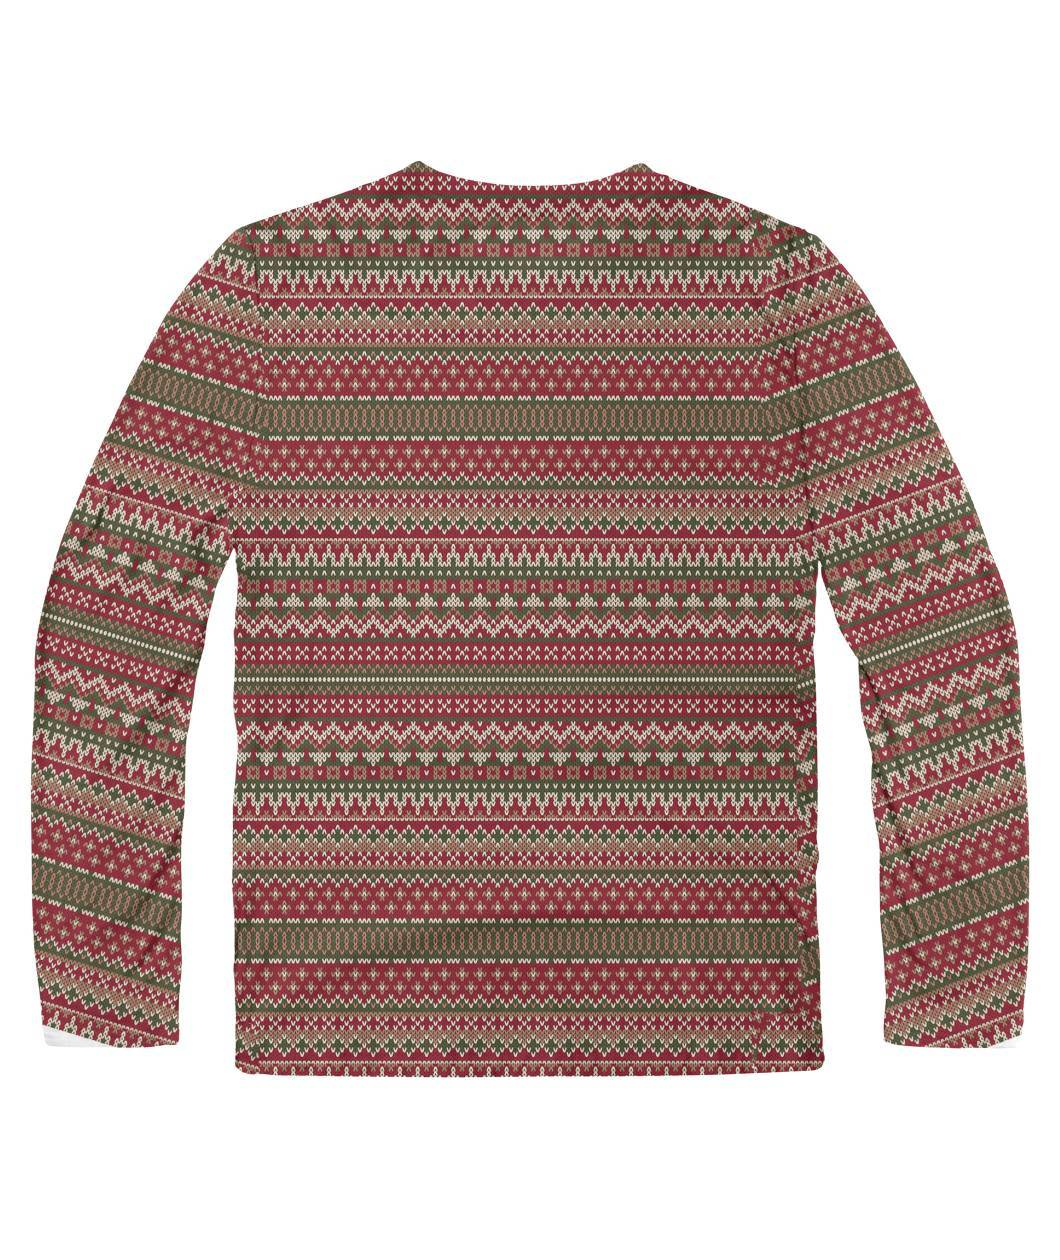 Ask Your Mom Ugly Sweaters - ONLINEPRESALES